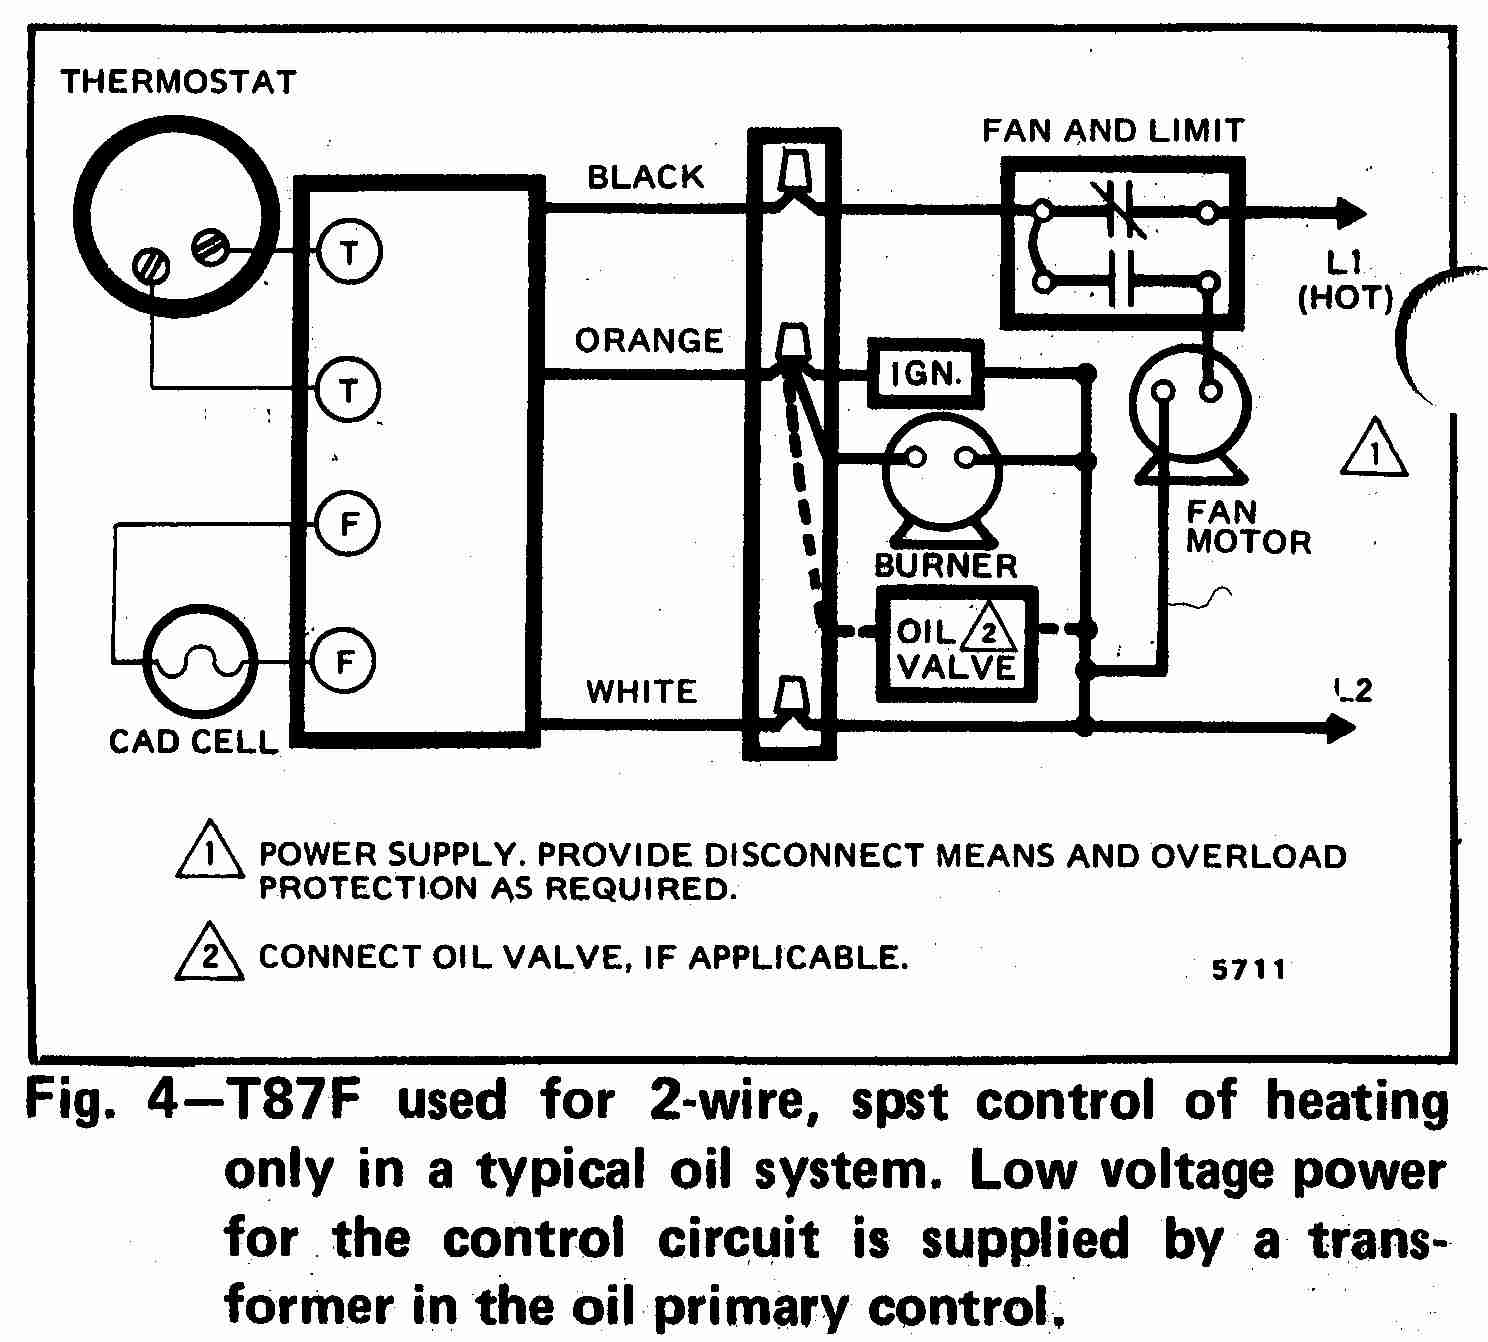 honeywell wiring schematic wiring diagram schematics home thermostat wiring 2wire thermostat wiring diagram honeywell 87k wiring diagram thermostat wiring schematic honeywell wiring schematic